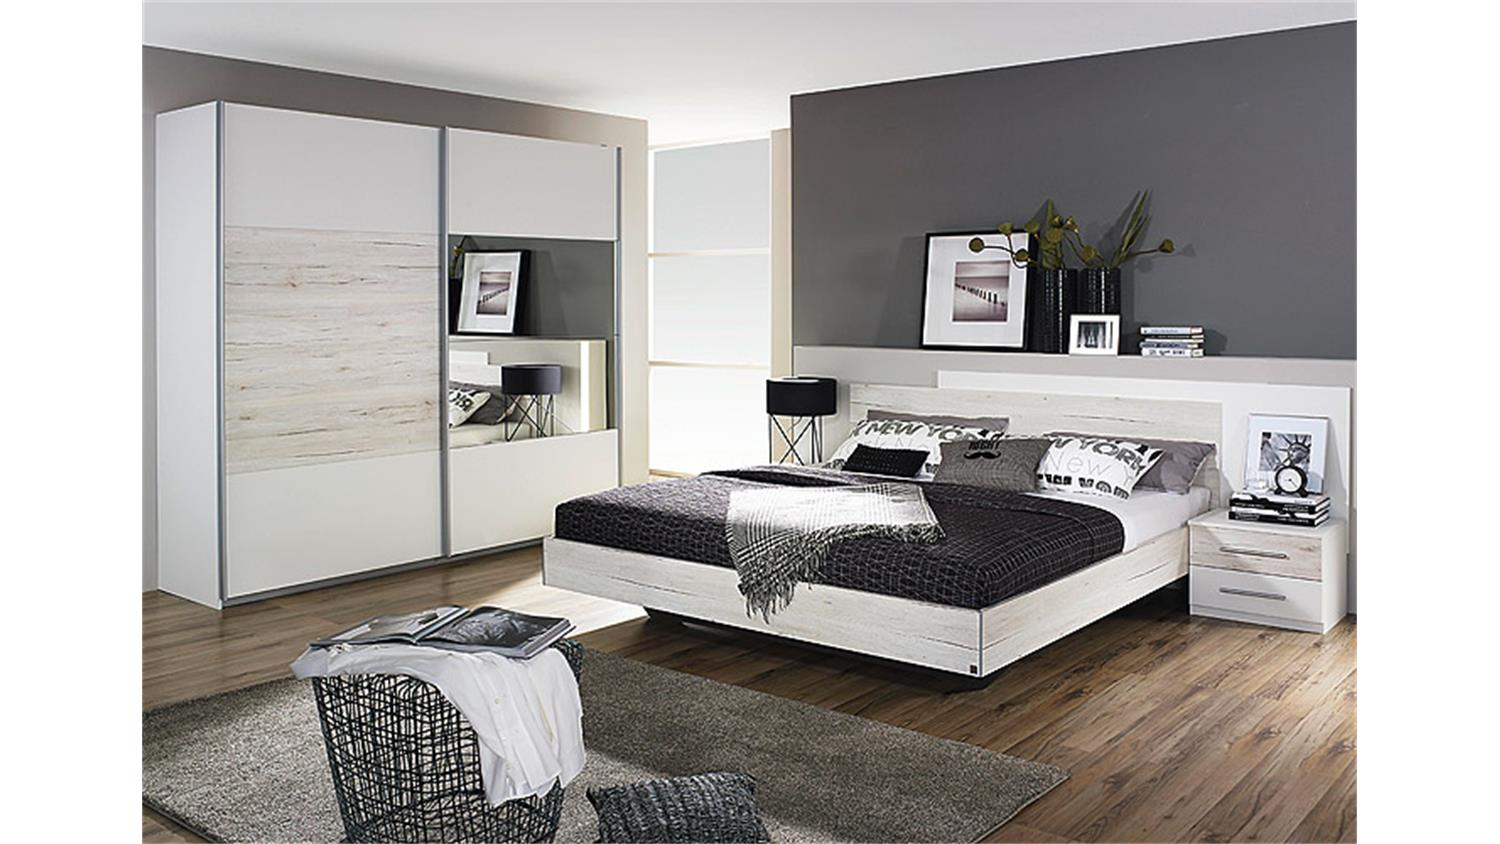 weise schlafzimmer alles ber wohndesign und m belideen. Black Bedroom Furniture Sets. Home Design Ideas